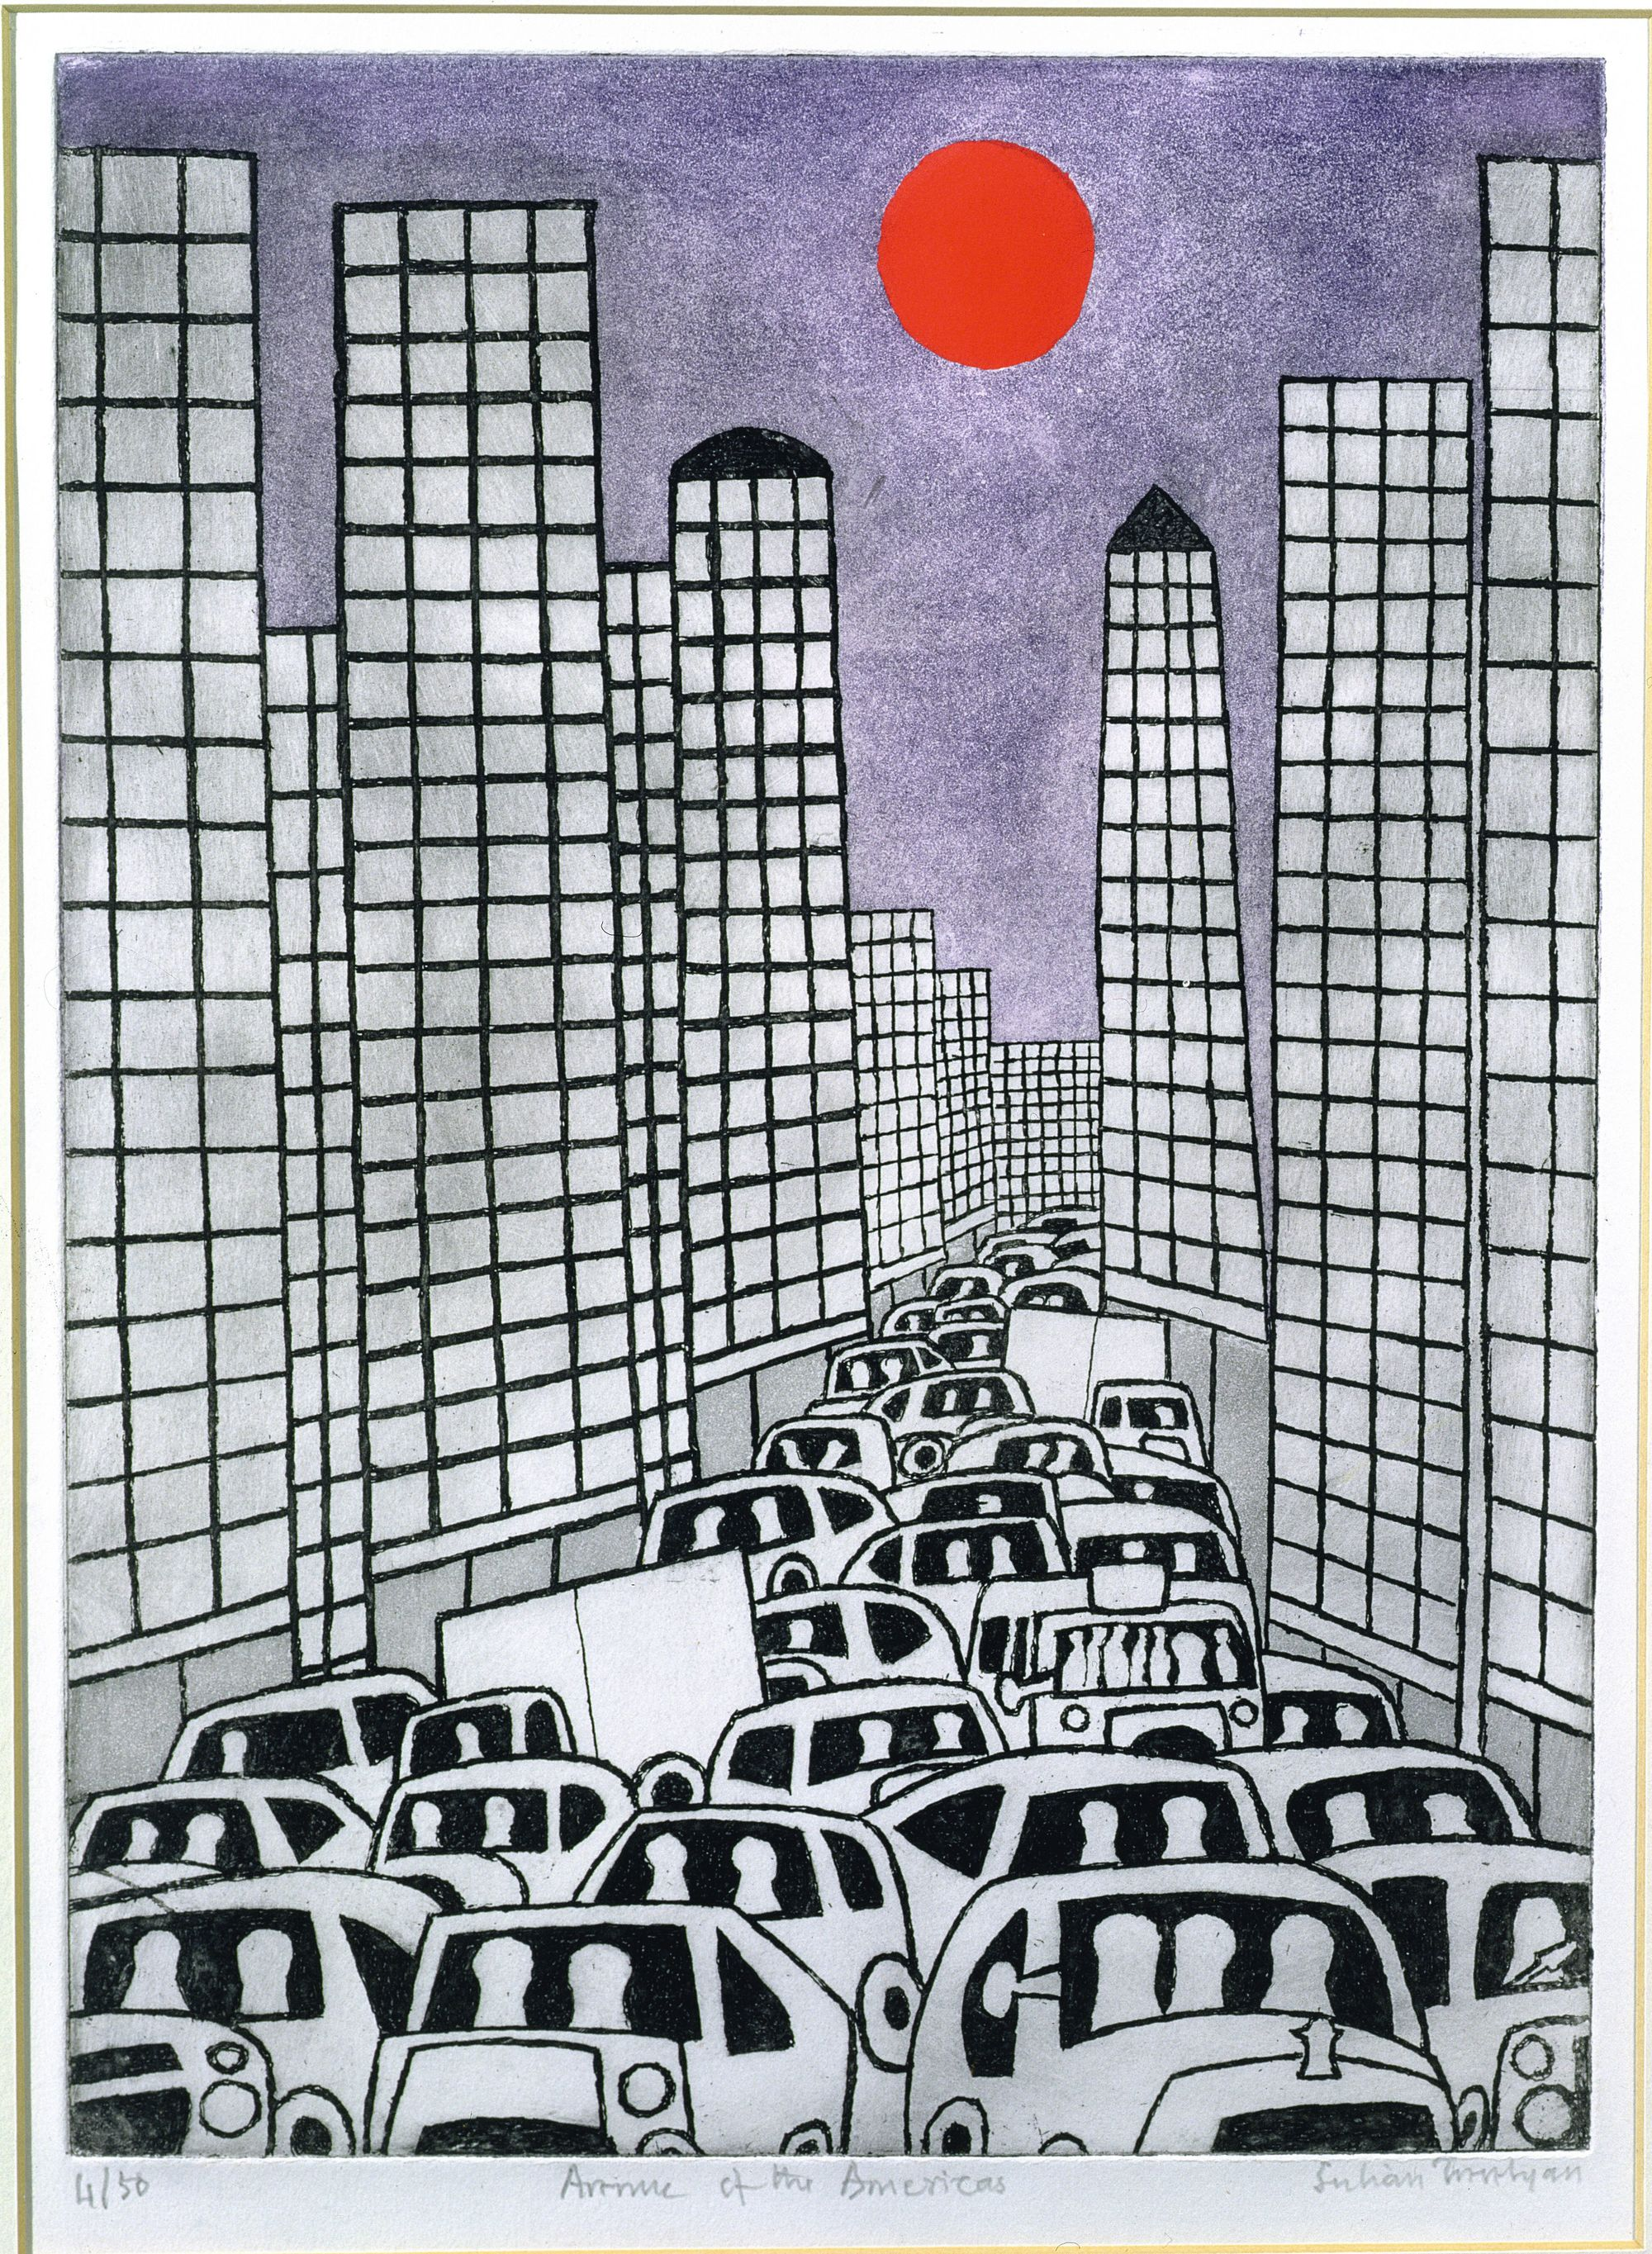 Avenue of the Americas, Julian Trevelyan, 1982.